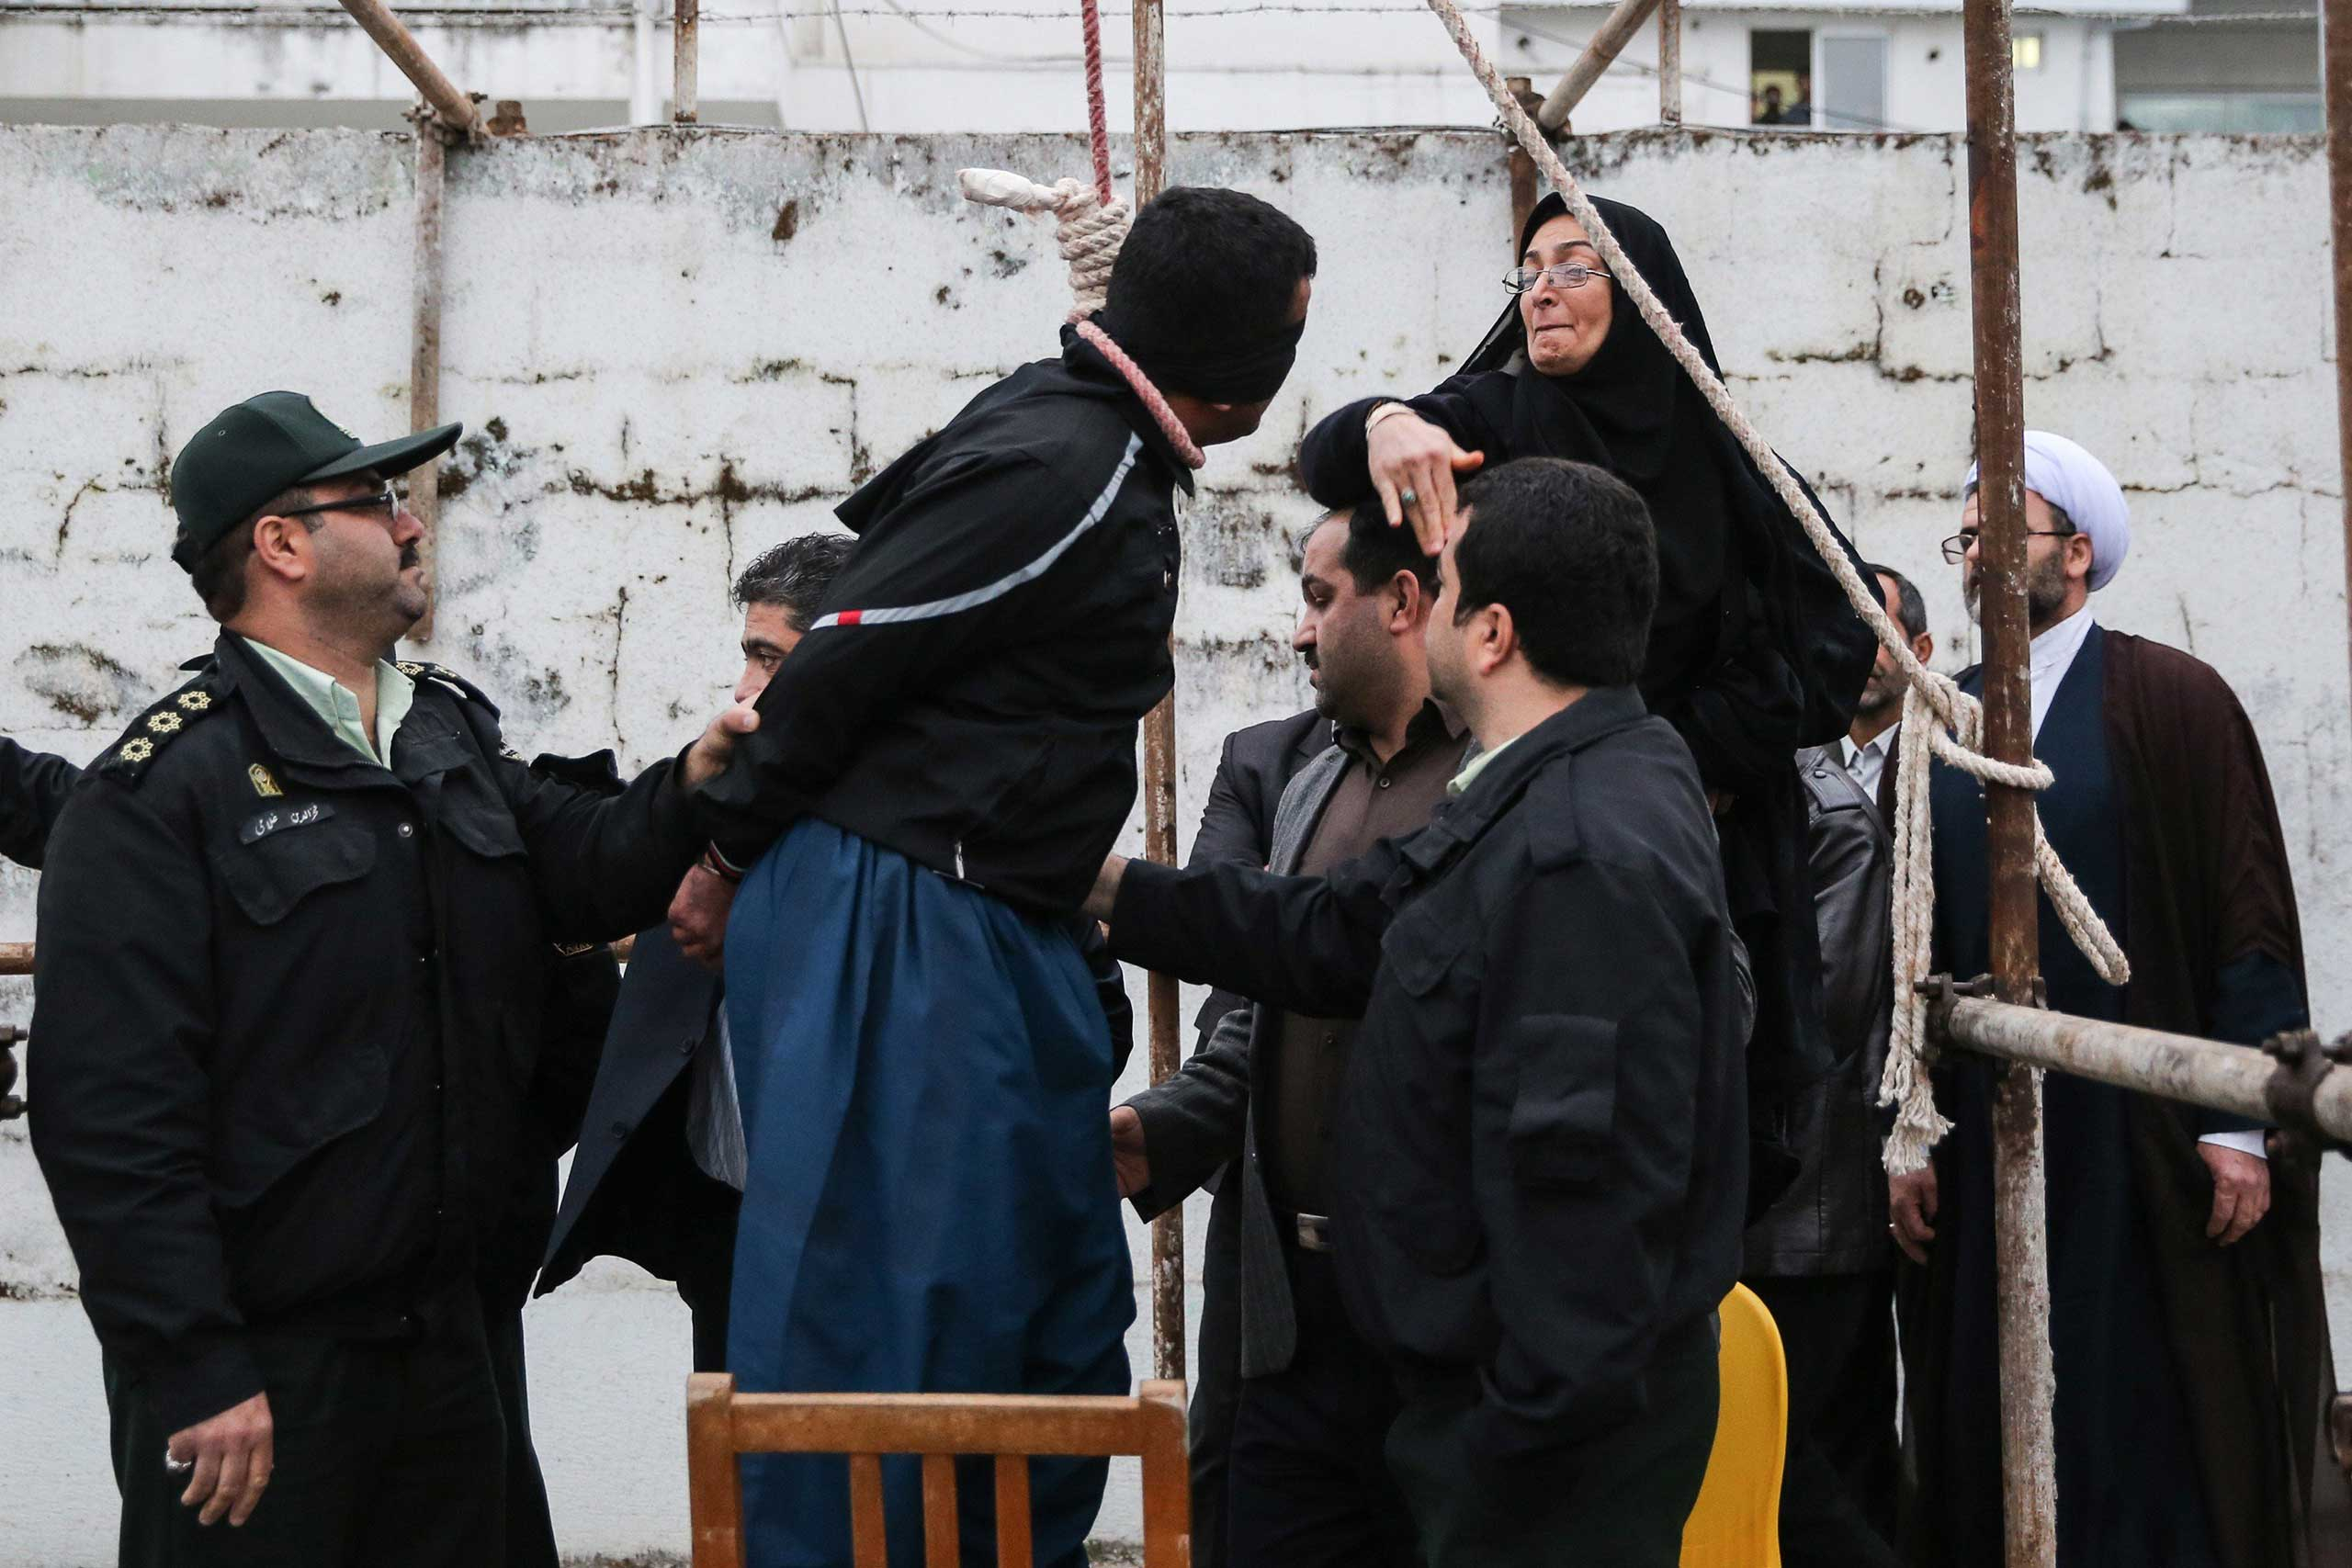 The mother of Abdolah Hosseinzadeh, who was murdered in 2007, slaps the man who killed her son during his execution ceremony just before she removed the noose around his neck with the help of her husband, sparing the life of her son's convicted murderer, Nowshahr, Iran, April 15, 2014.